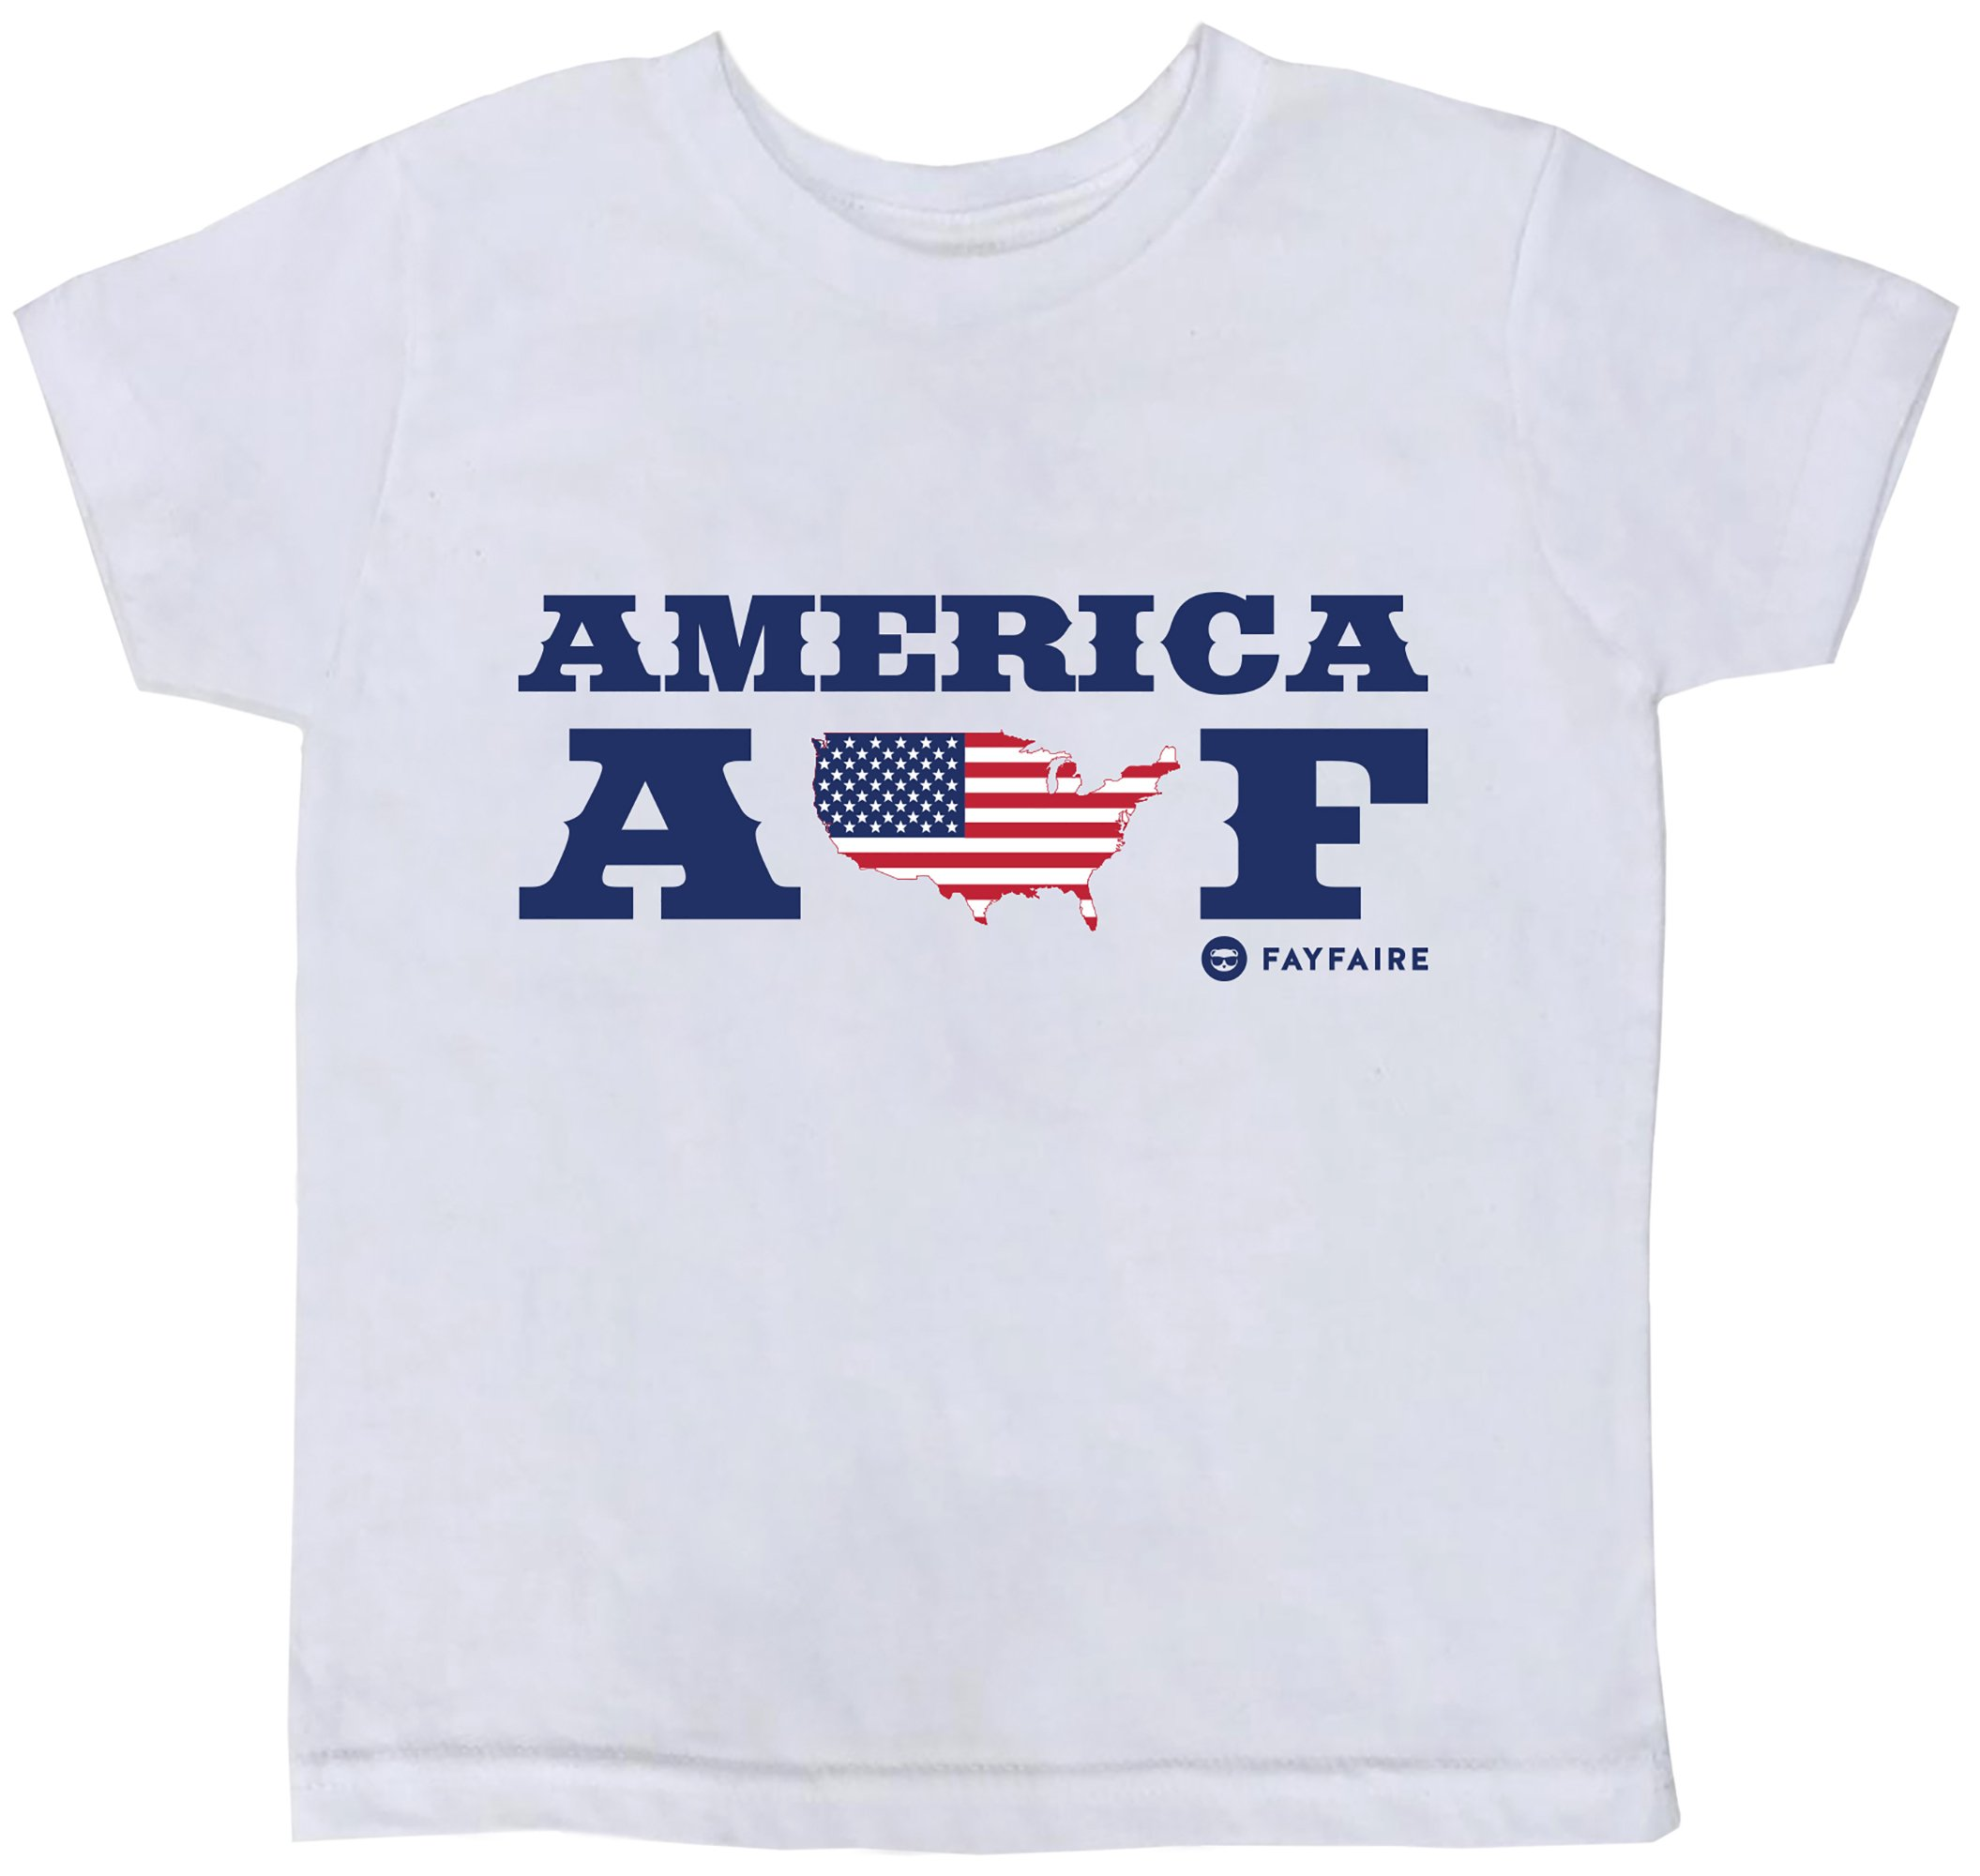 Fayfaire 4th of July Independence Day Shirts for Girls and Boys America AF 3T